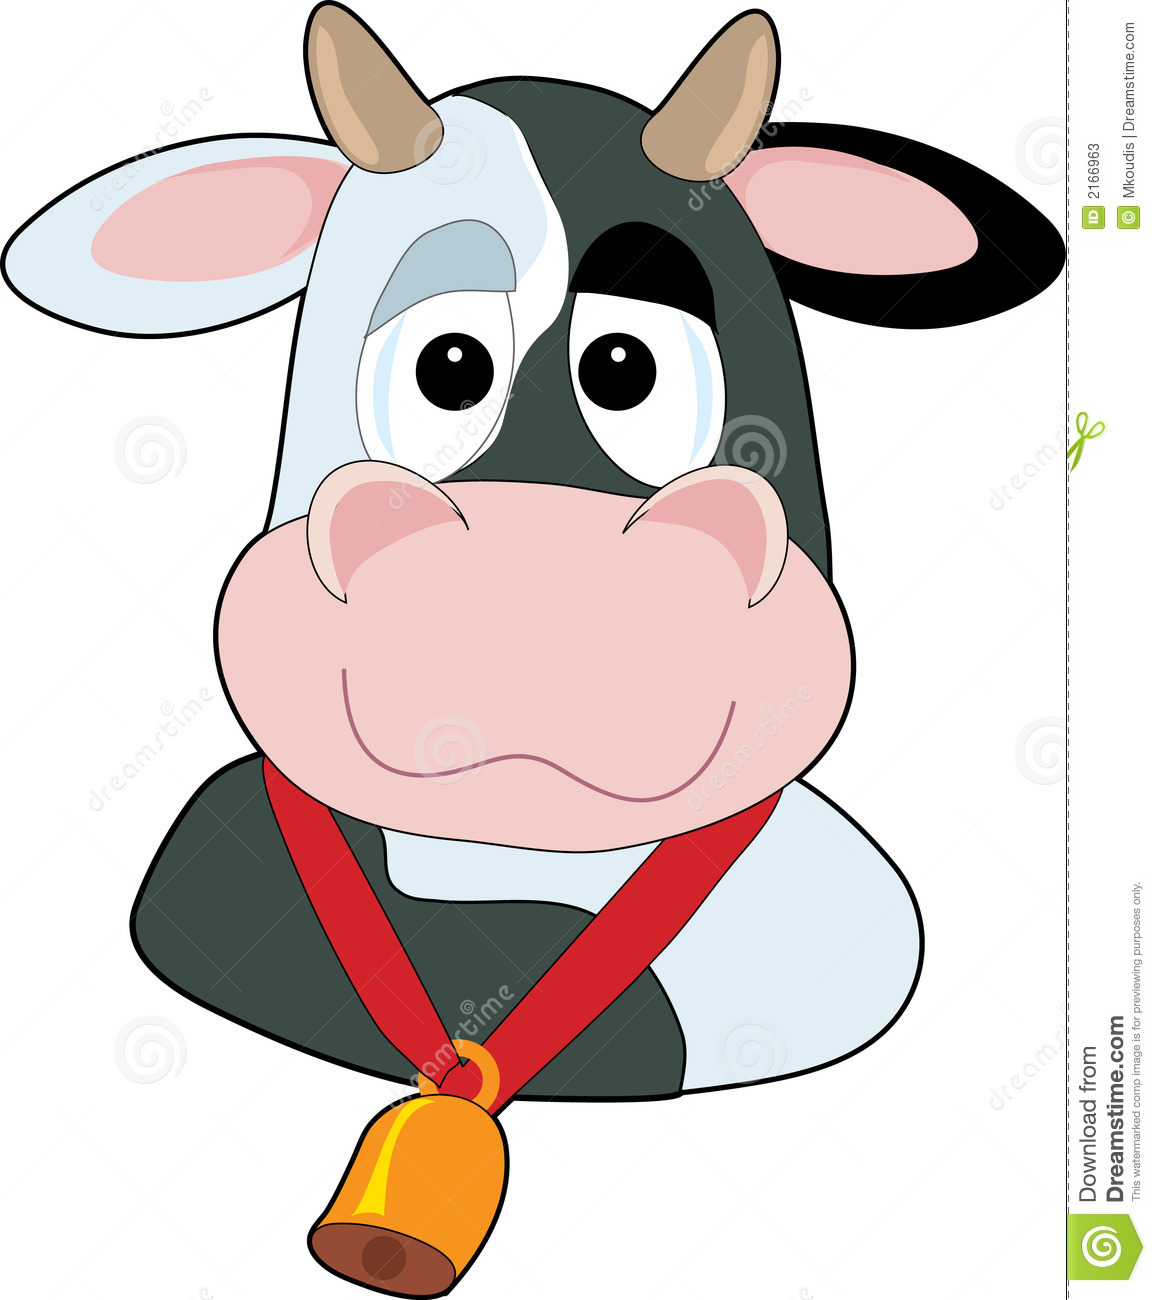 Goofy Cow Head Stock Photos - Image: 2166963